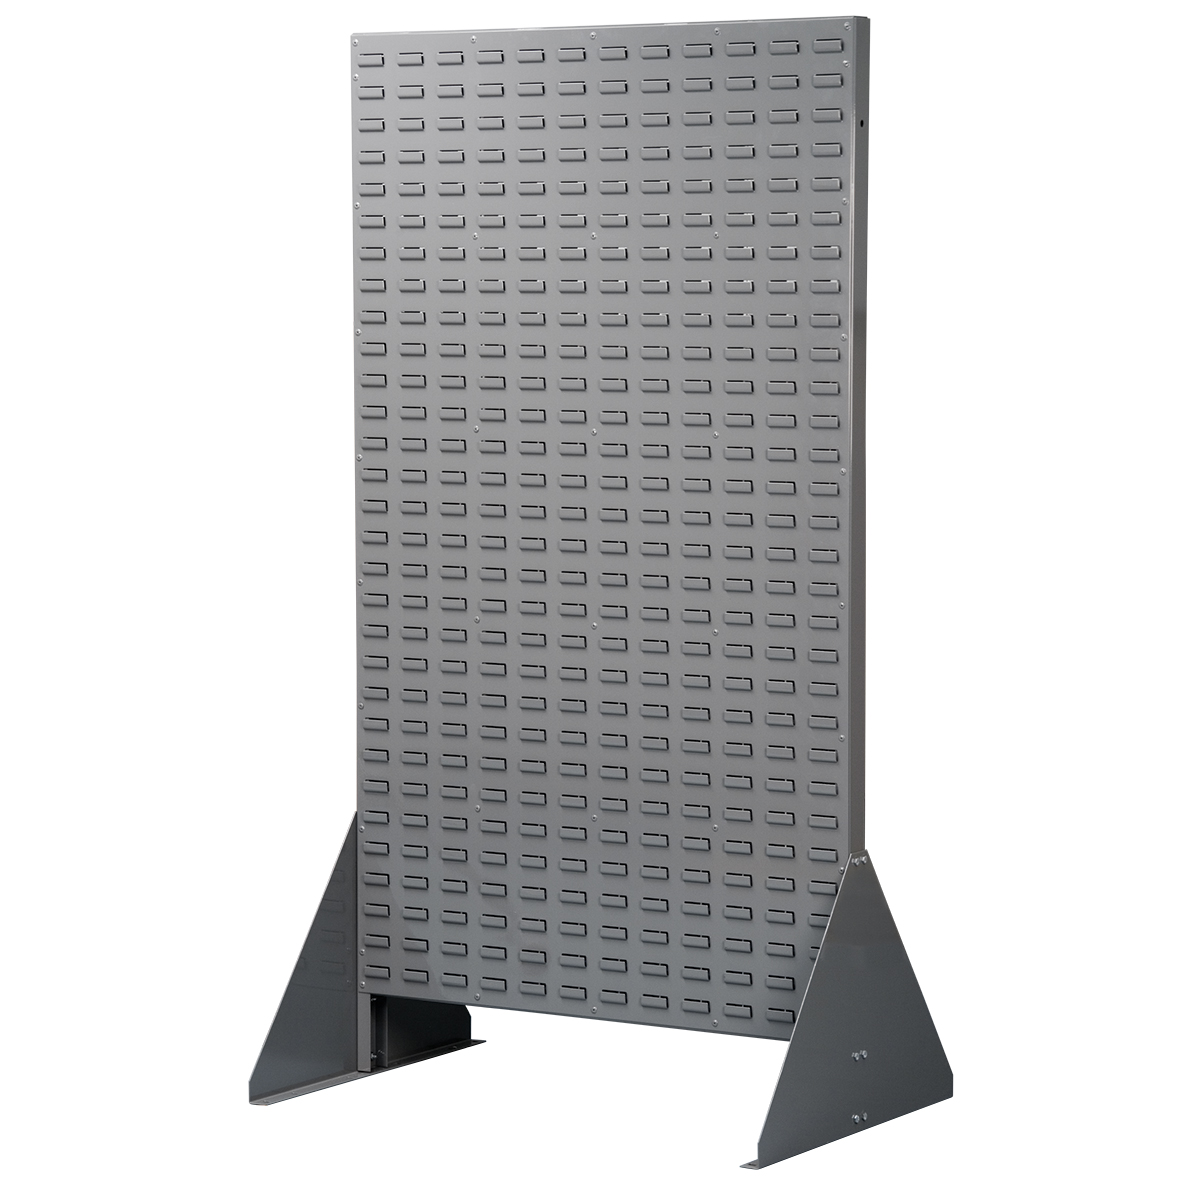 Louvered Rivet Floor Rack, 2-Sided, Gray (30676).  This item sold in carton quantities of 1.